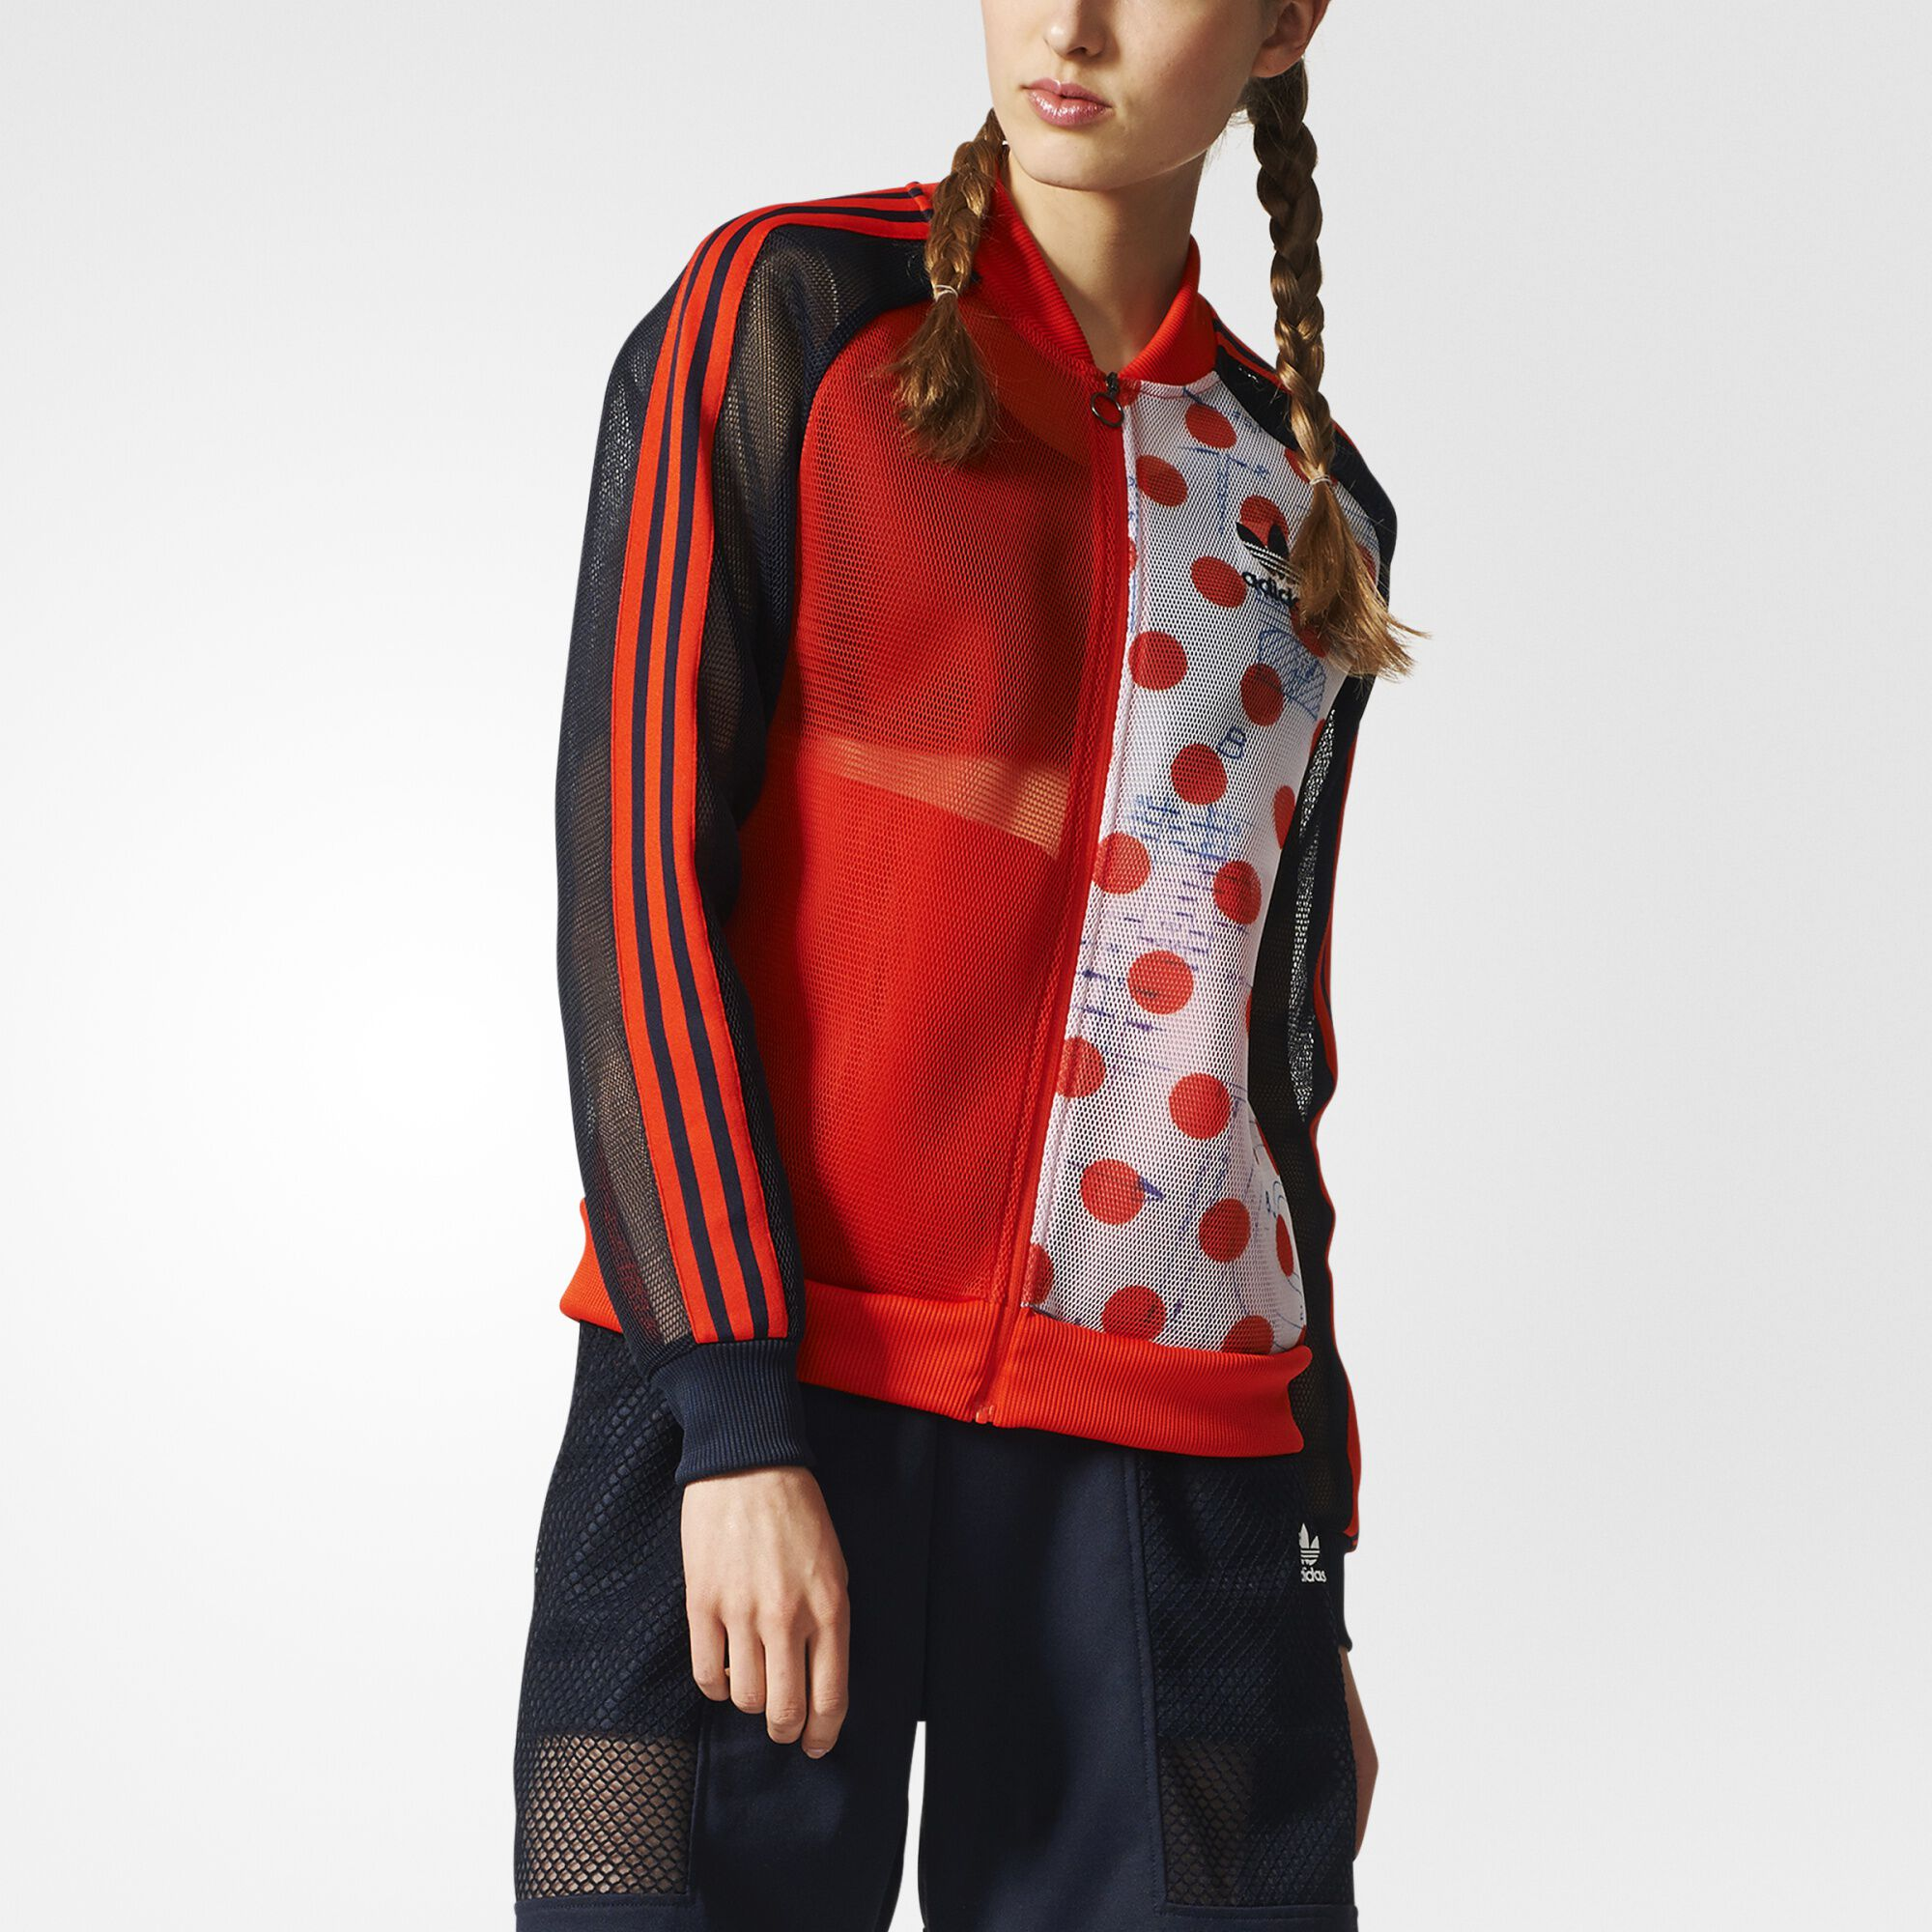 095a6cabcd6 Buy floral print adidas jacket   OFF79% Discounted